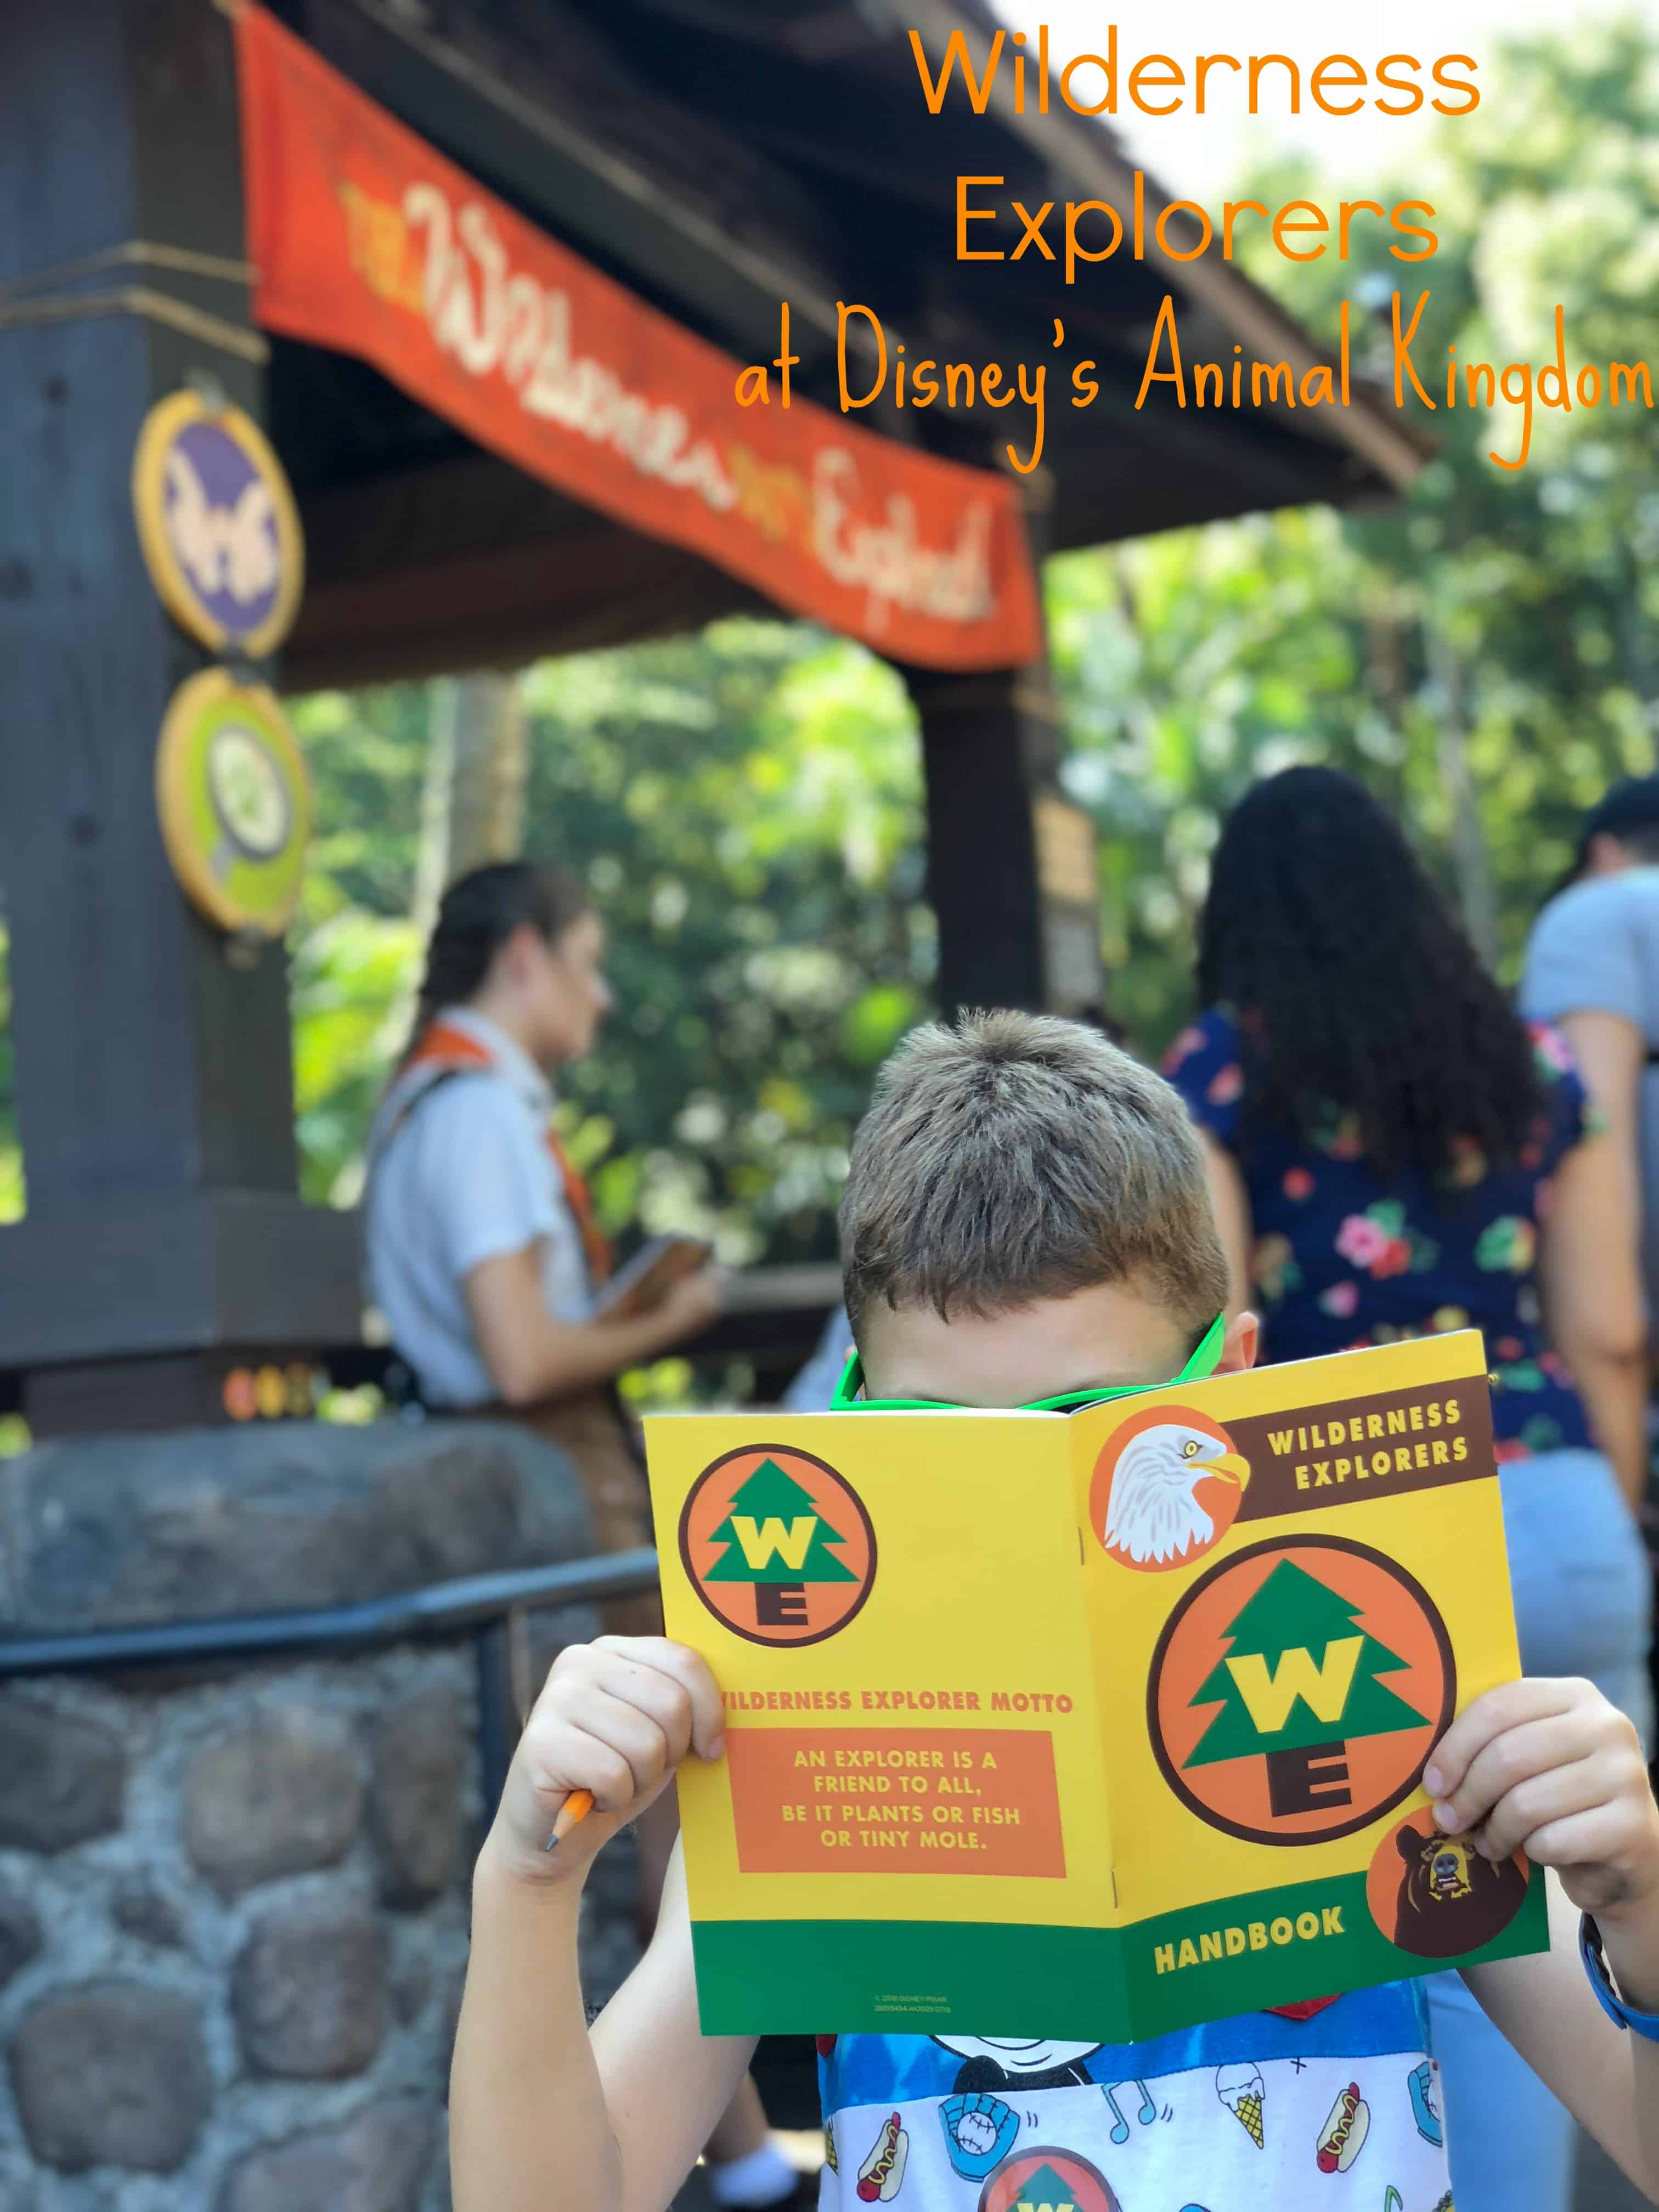 Wilderness Explorers at Disney's Animal Kingdom